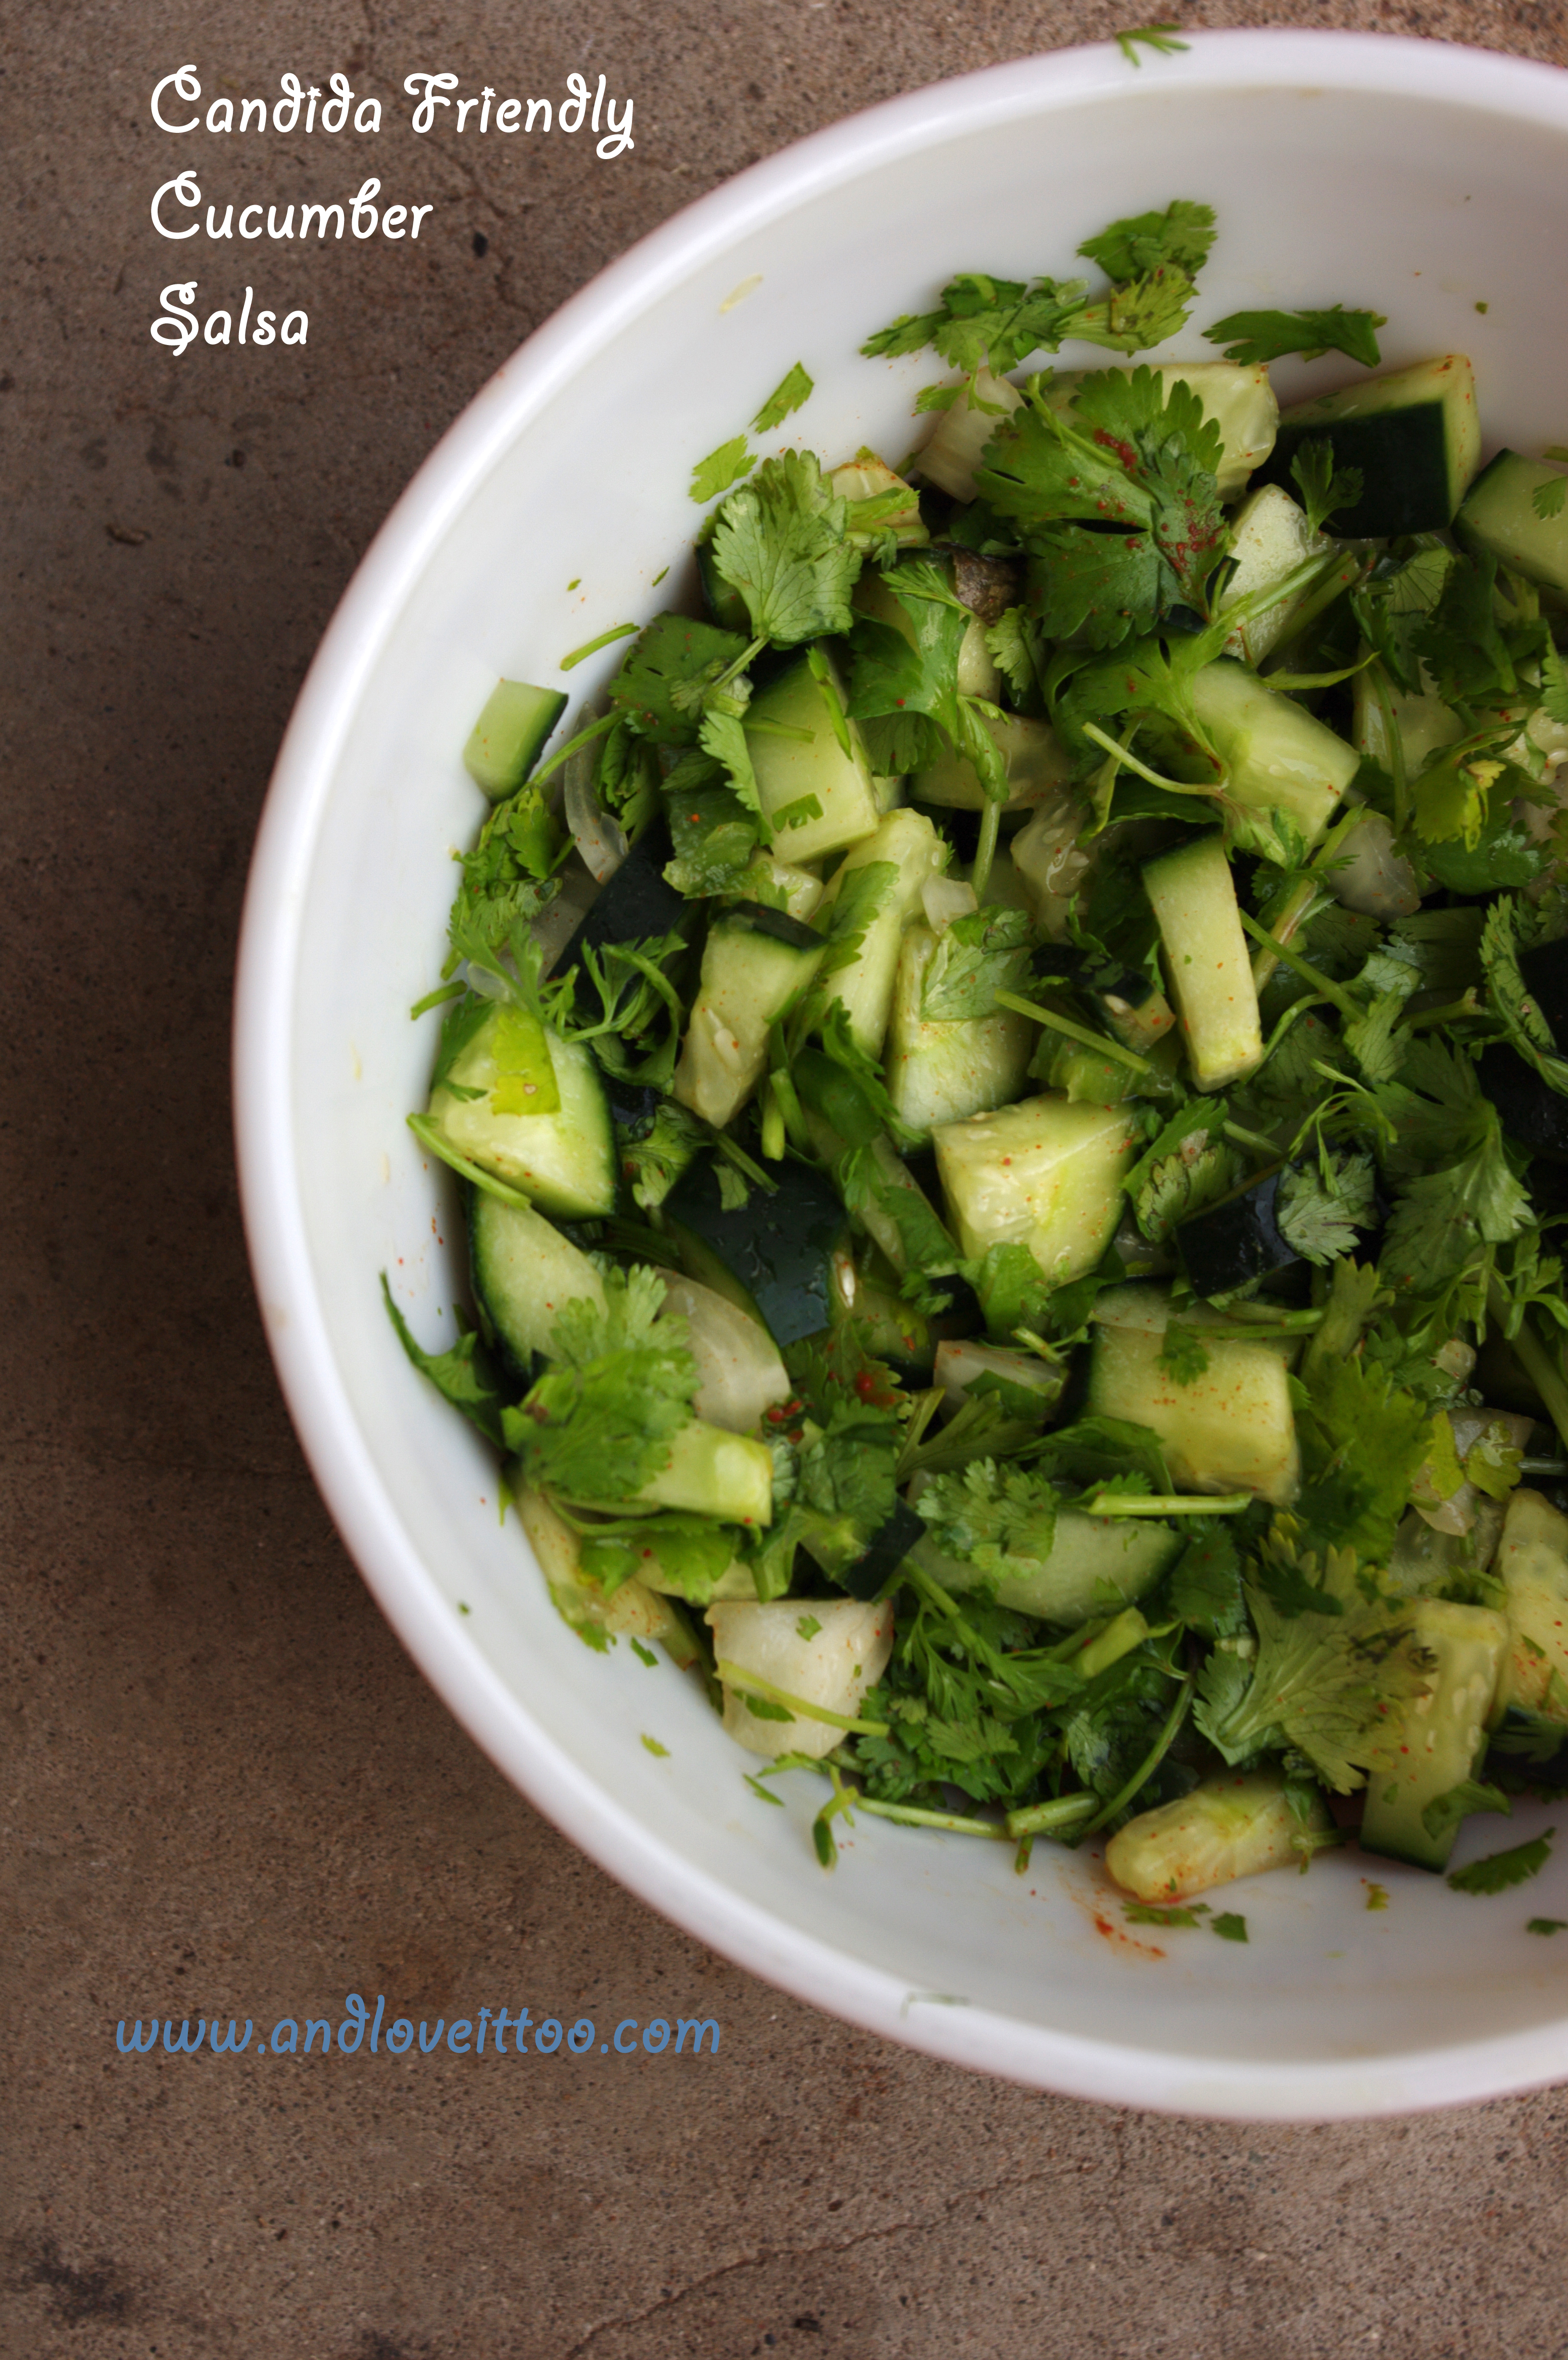 Candida Friendly Cucumber Salsa